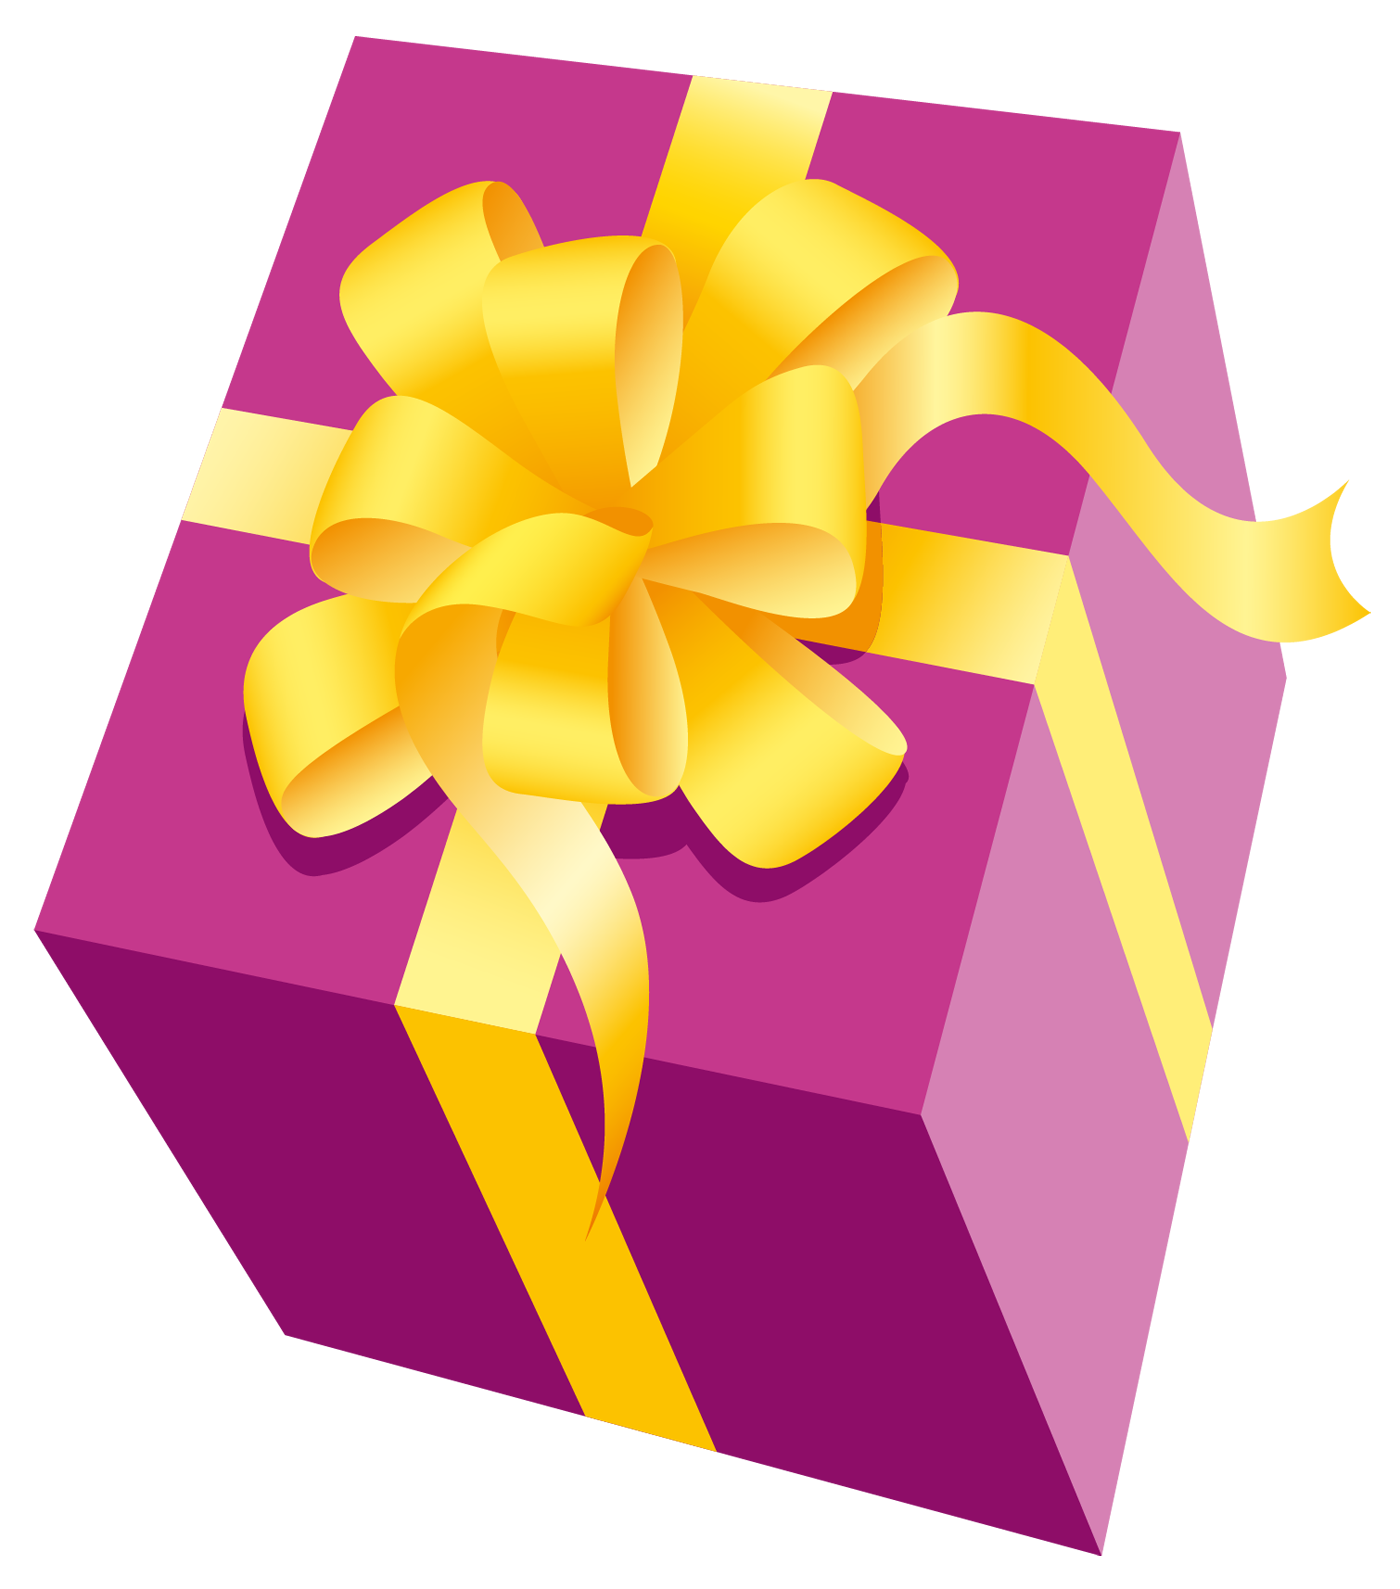 Free download of Gift PNG Icon